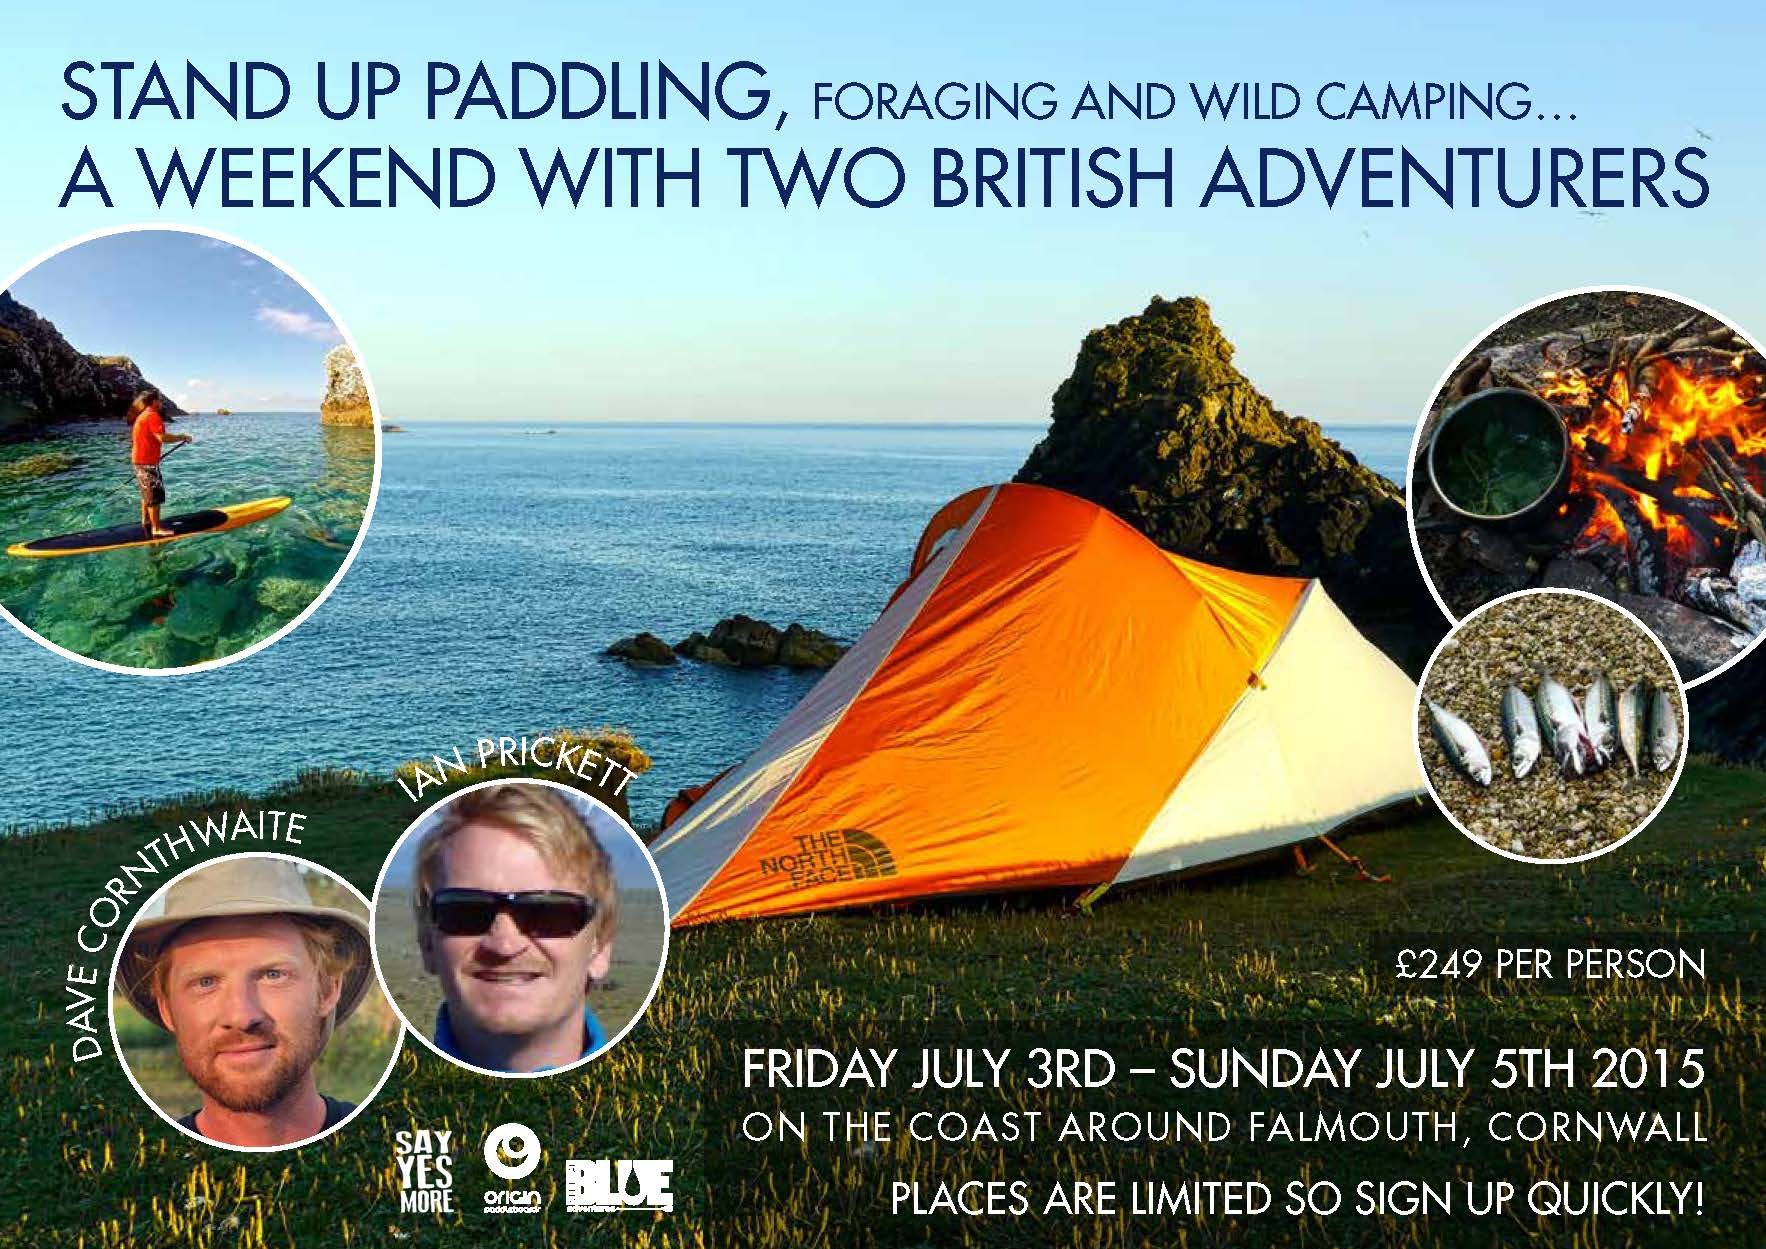 SUP and wild camping weekend with two British adventurers